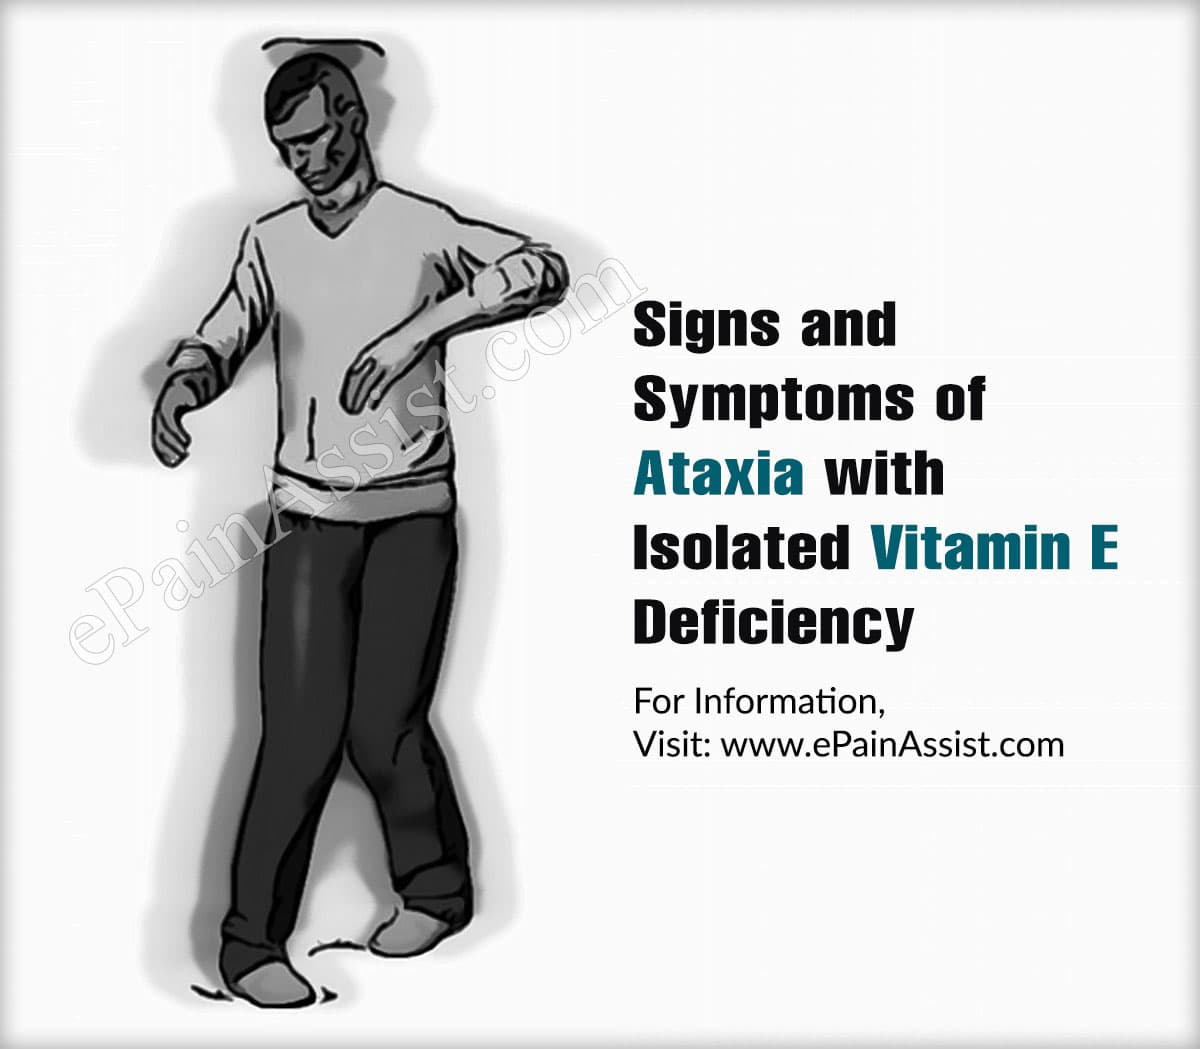 Signs and Symptoms of Ataxia with Isolated Vitamin E Deficiency